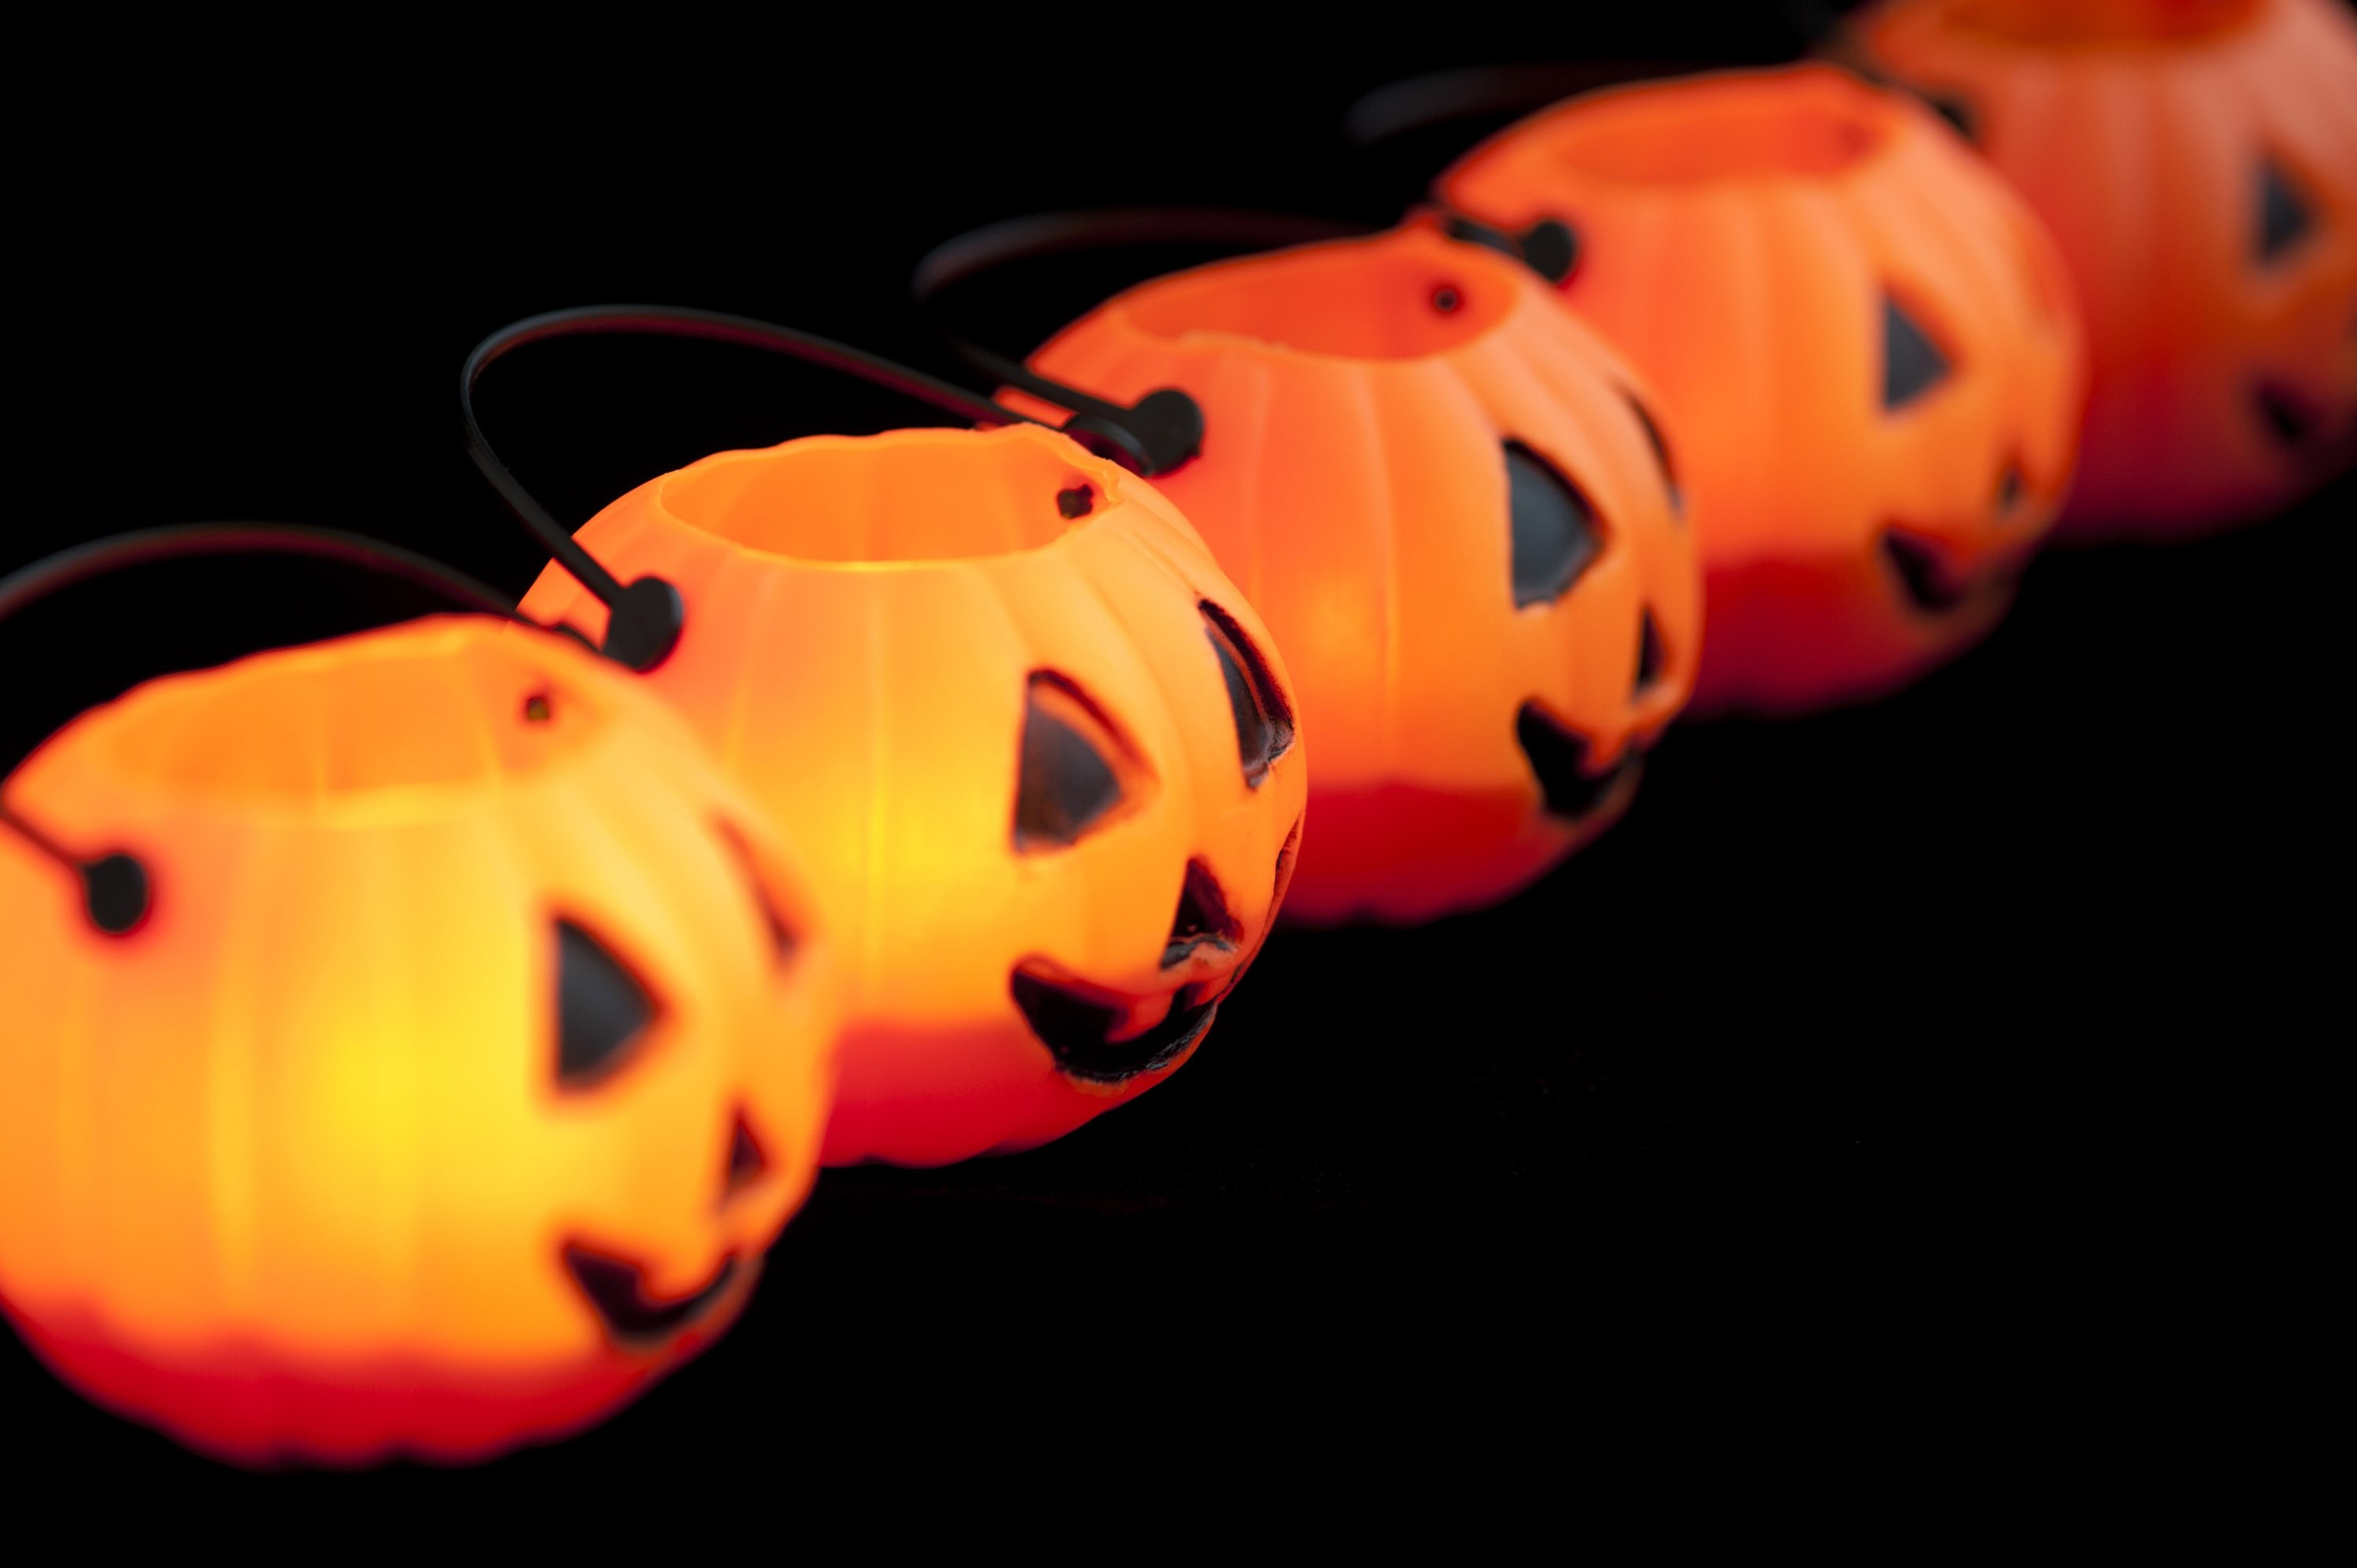 Receding diagonal line of ceramic pumpkin jack-o-lantern ornaments with cut out faces and handles on a black background with shallow dof and copyspace